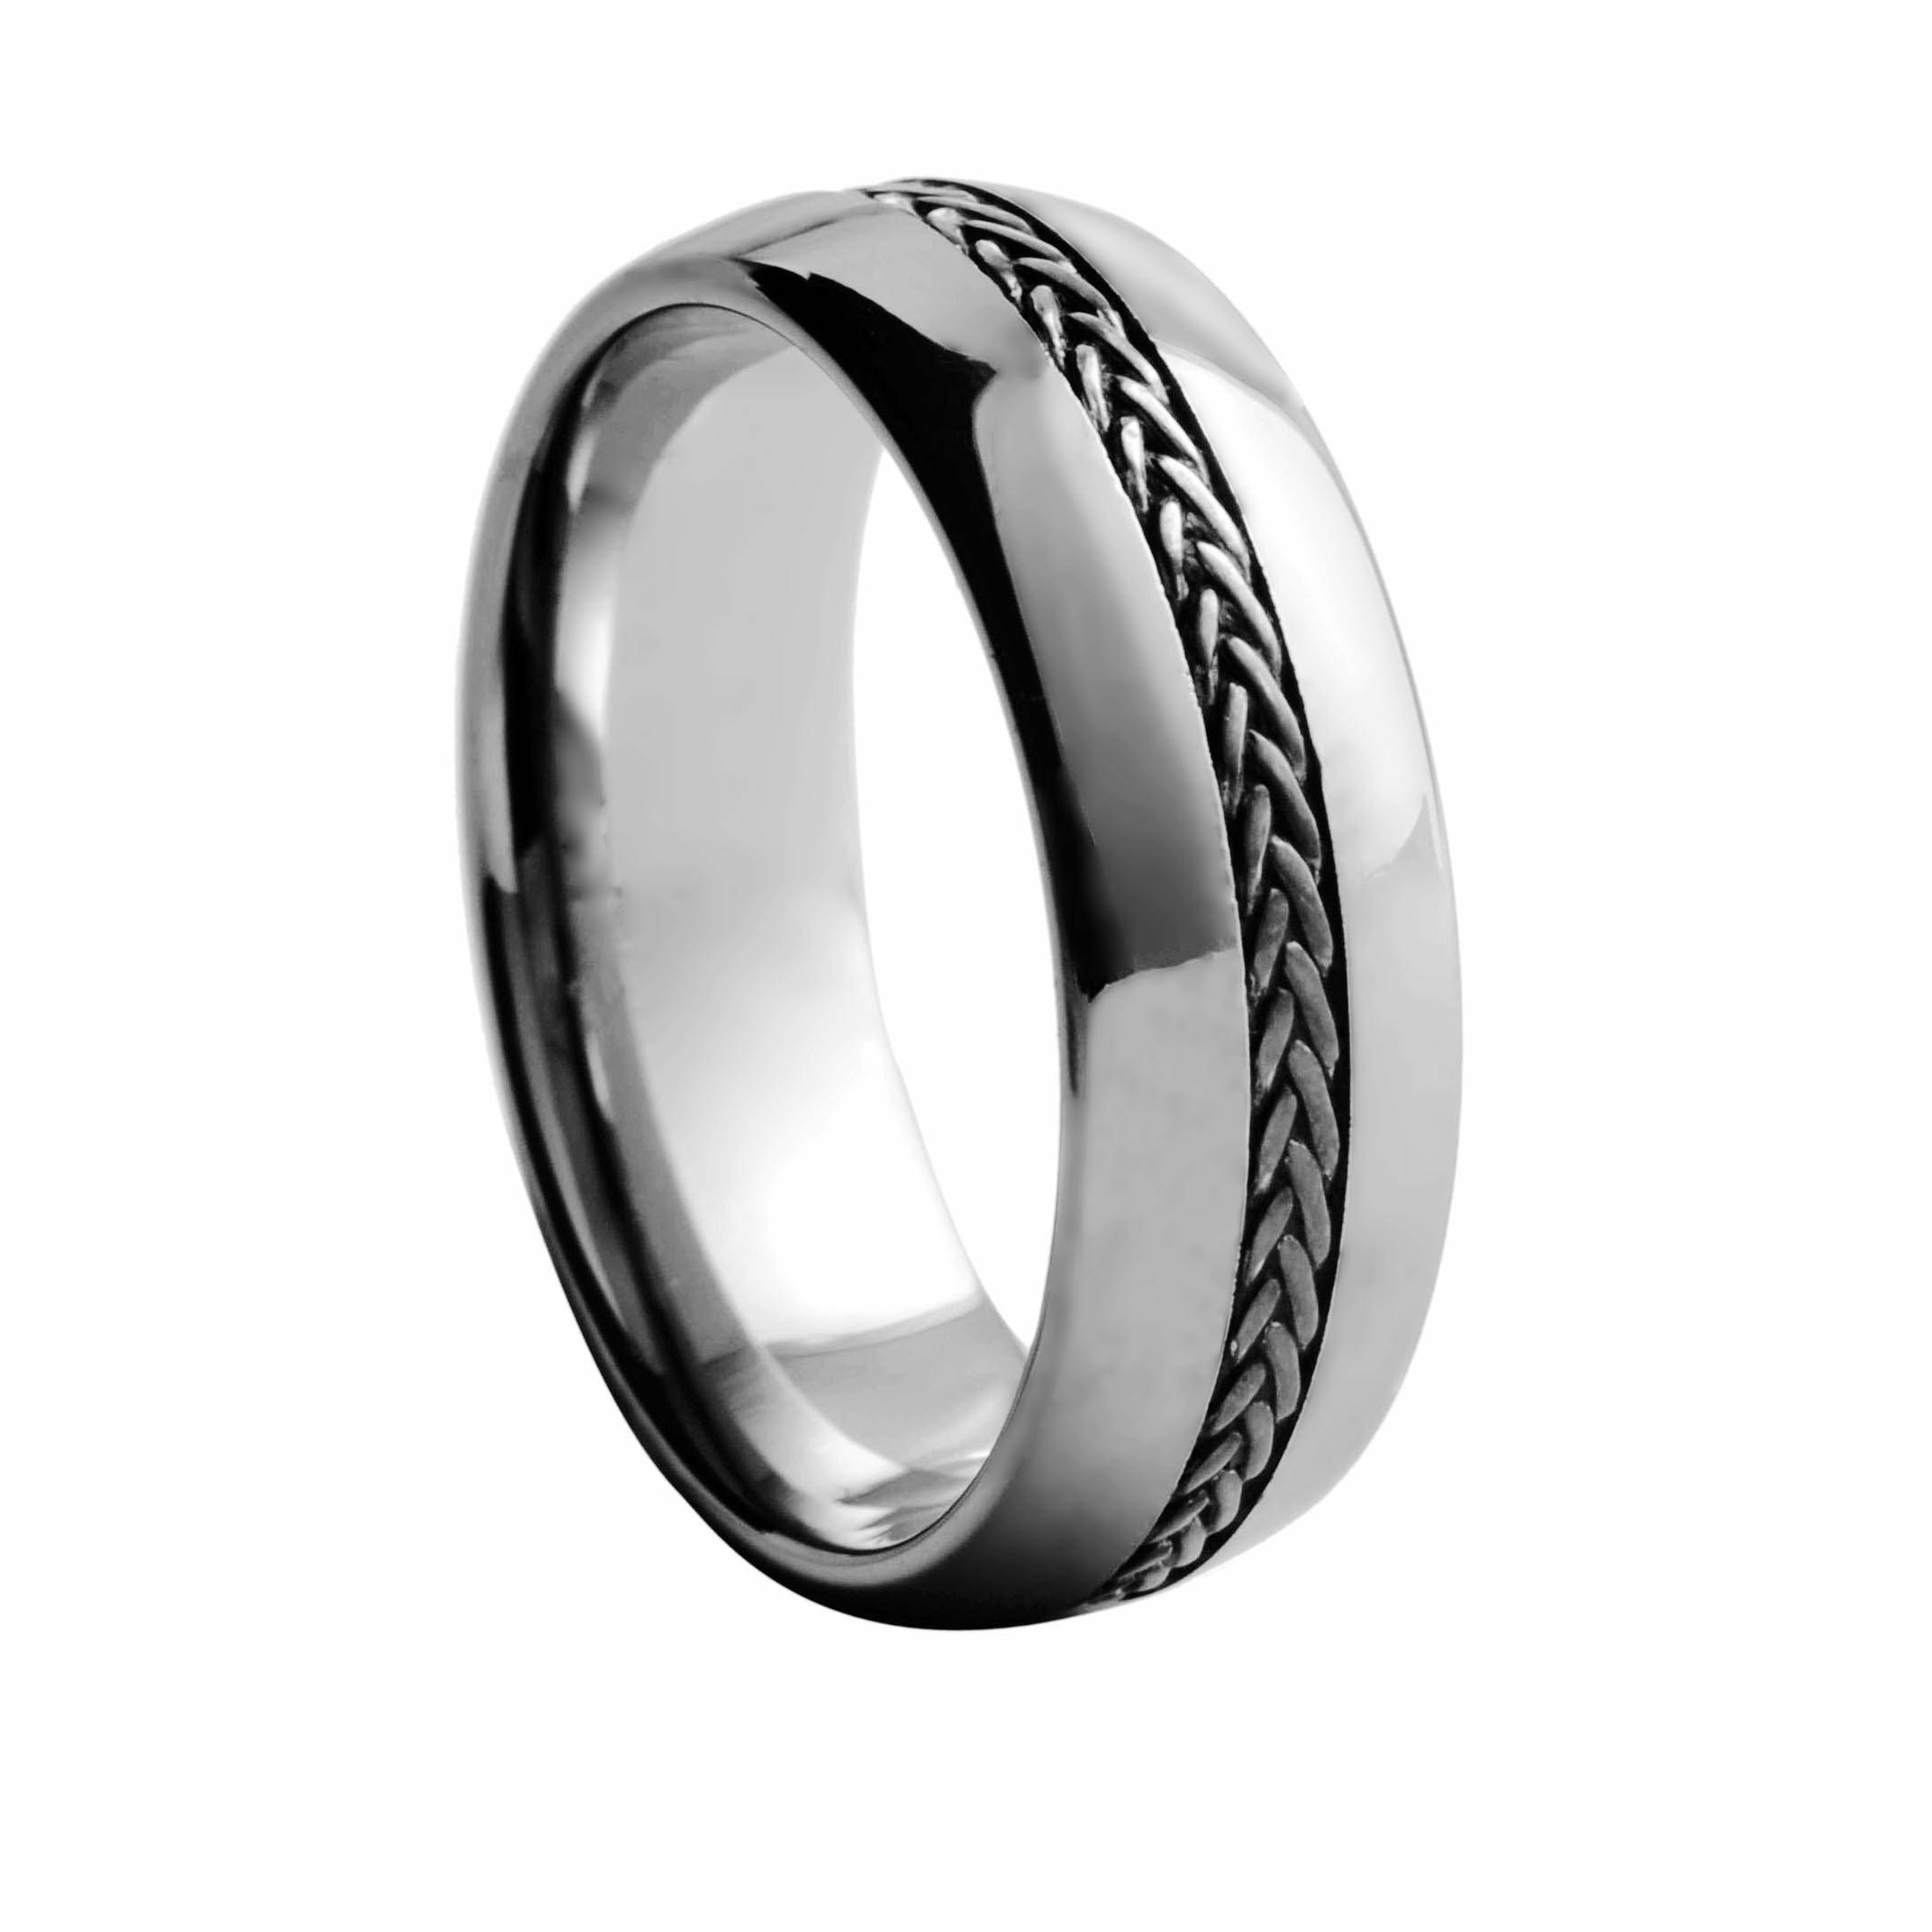 Top quality silver rope inlay tungsten carbide rings polished